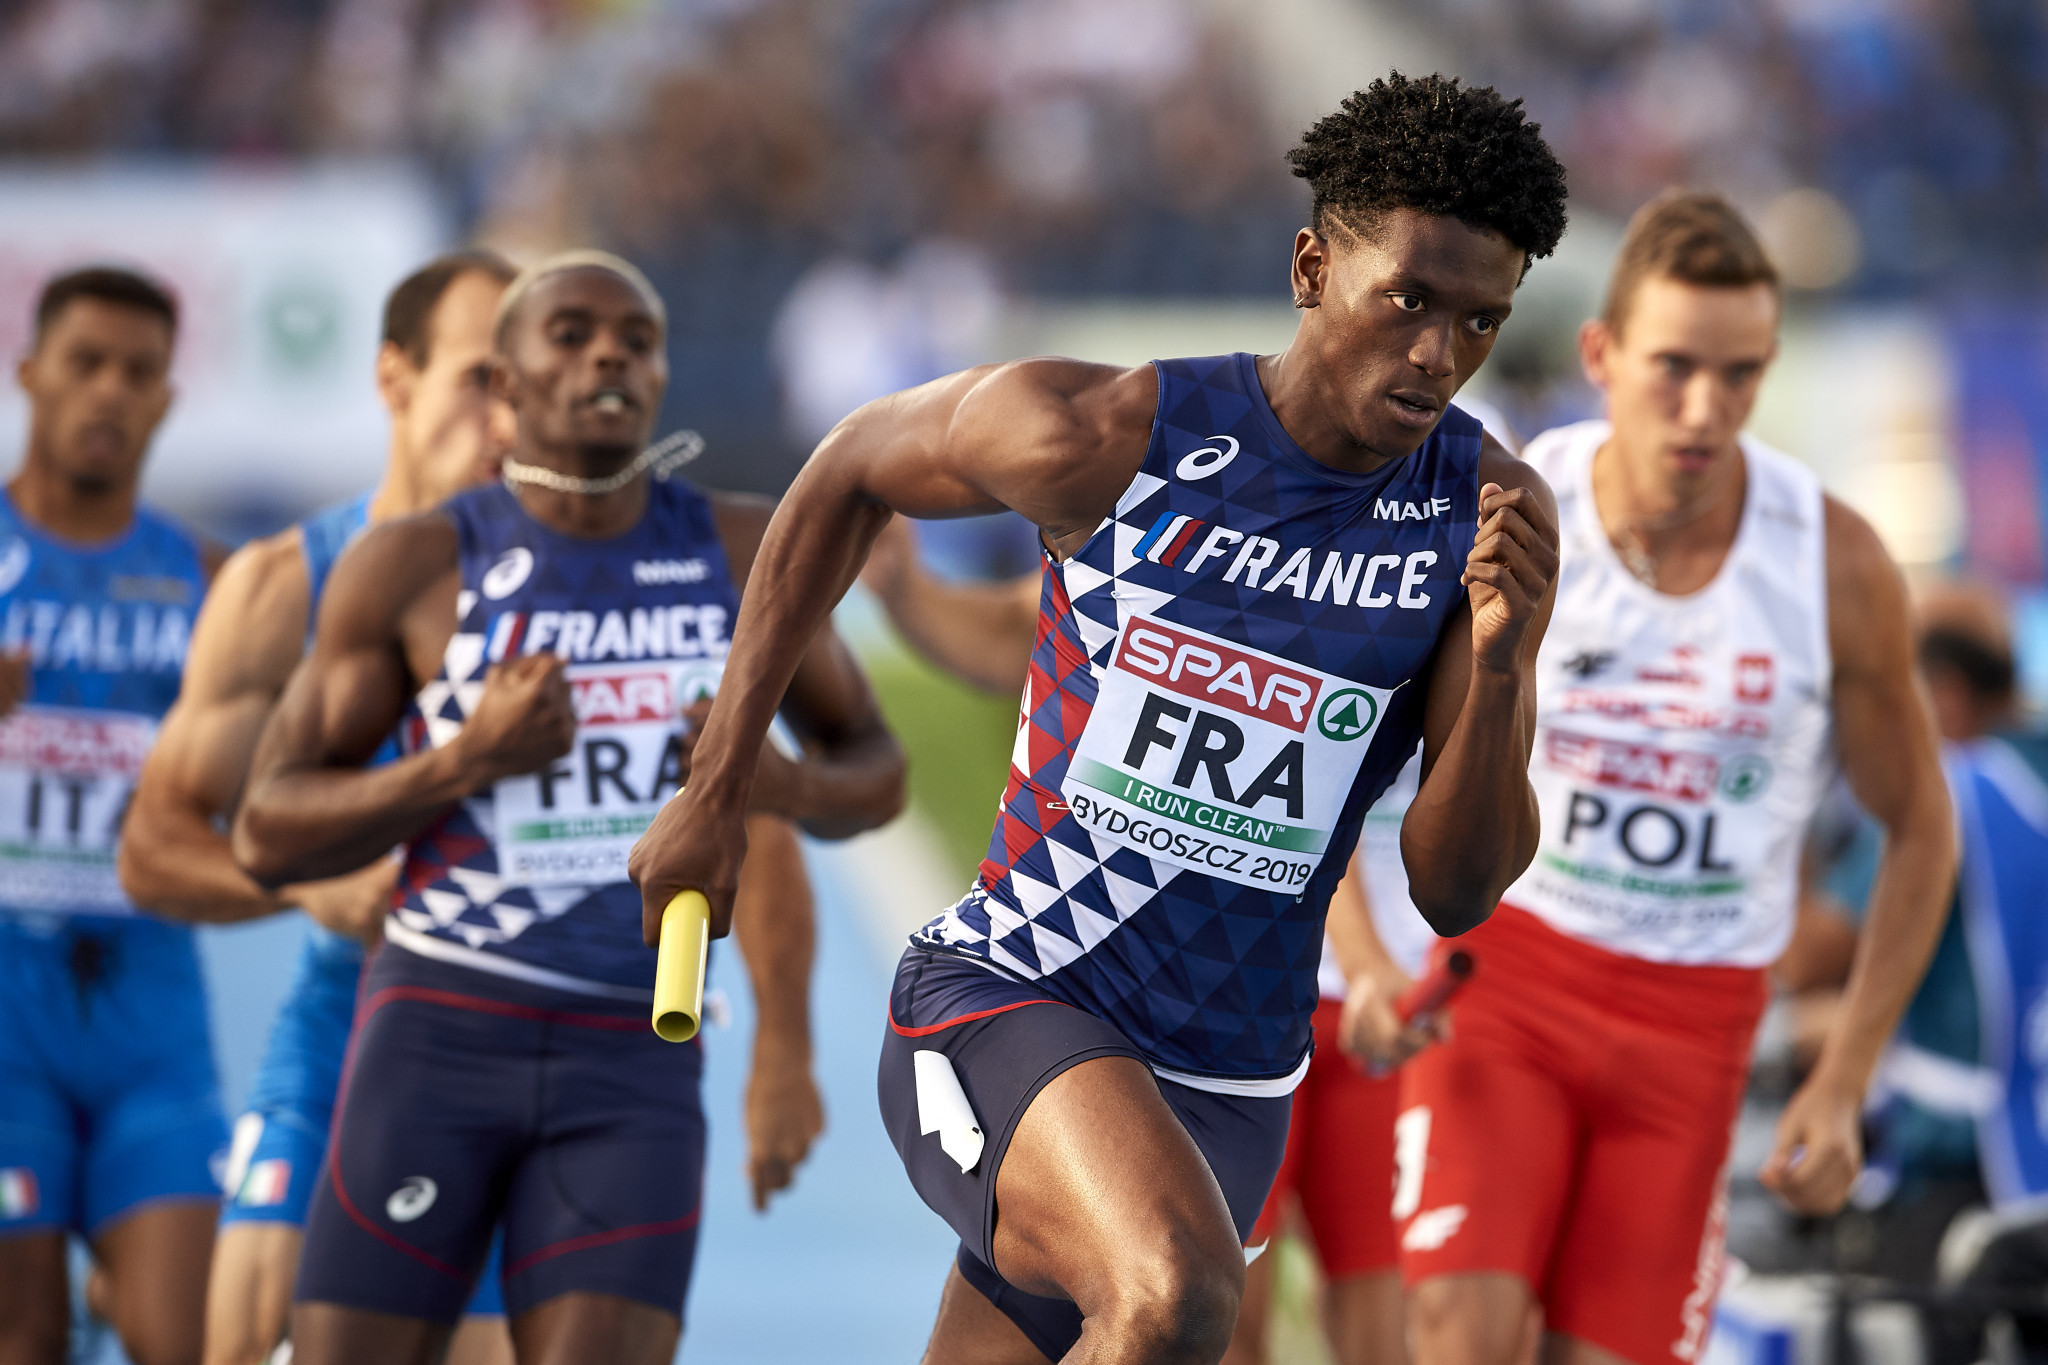 Paris is due to host the 2020 European Athletics Championships ©Getty Images